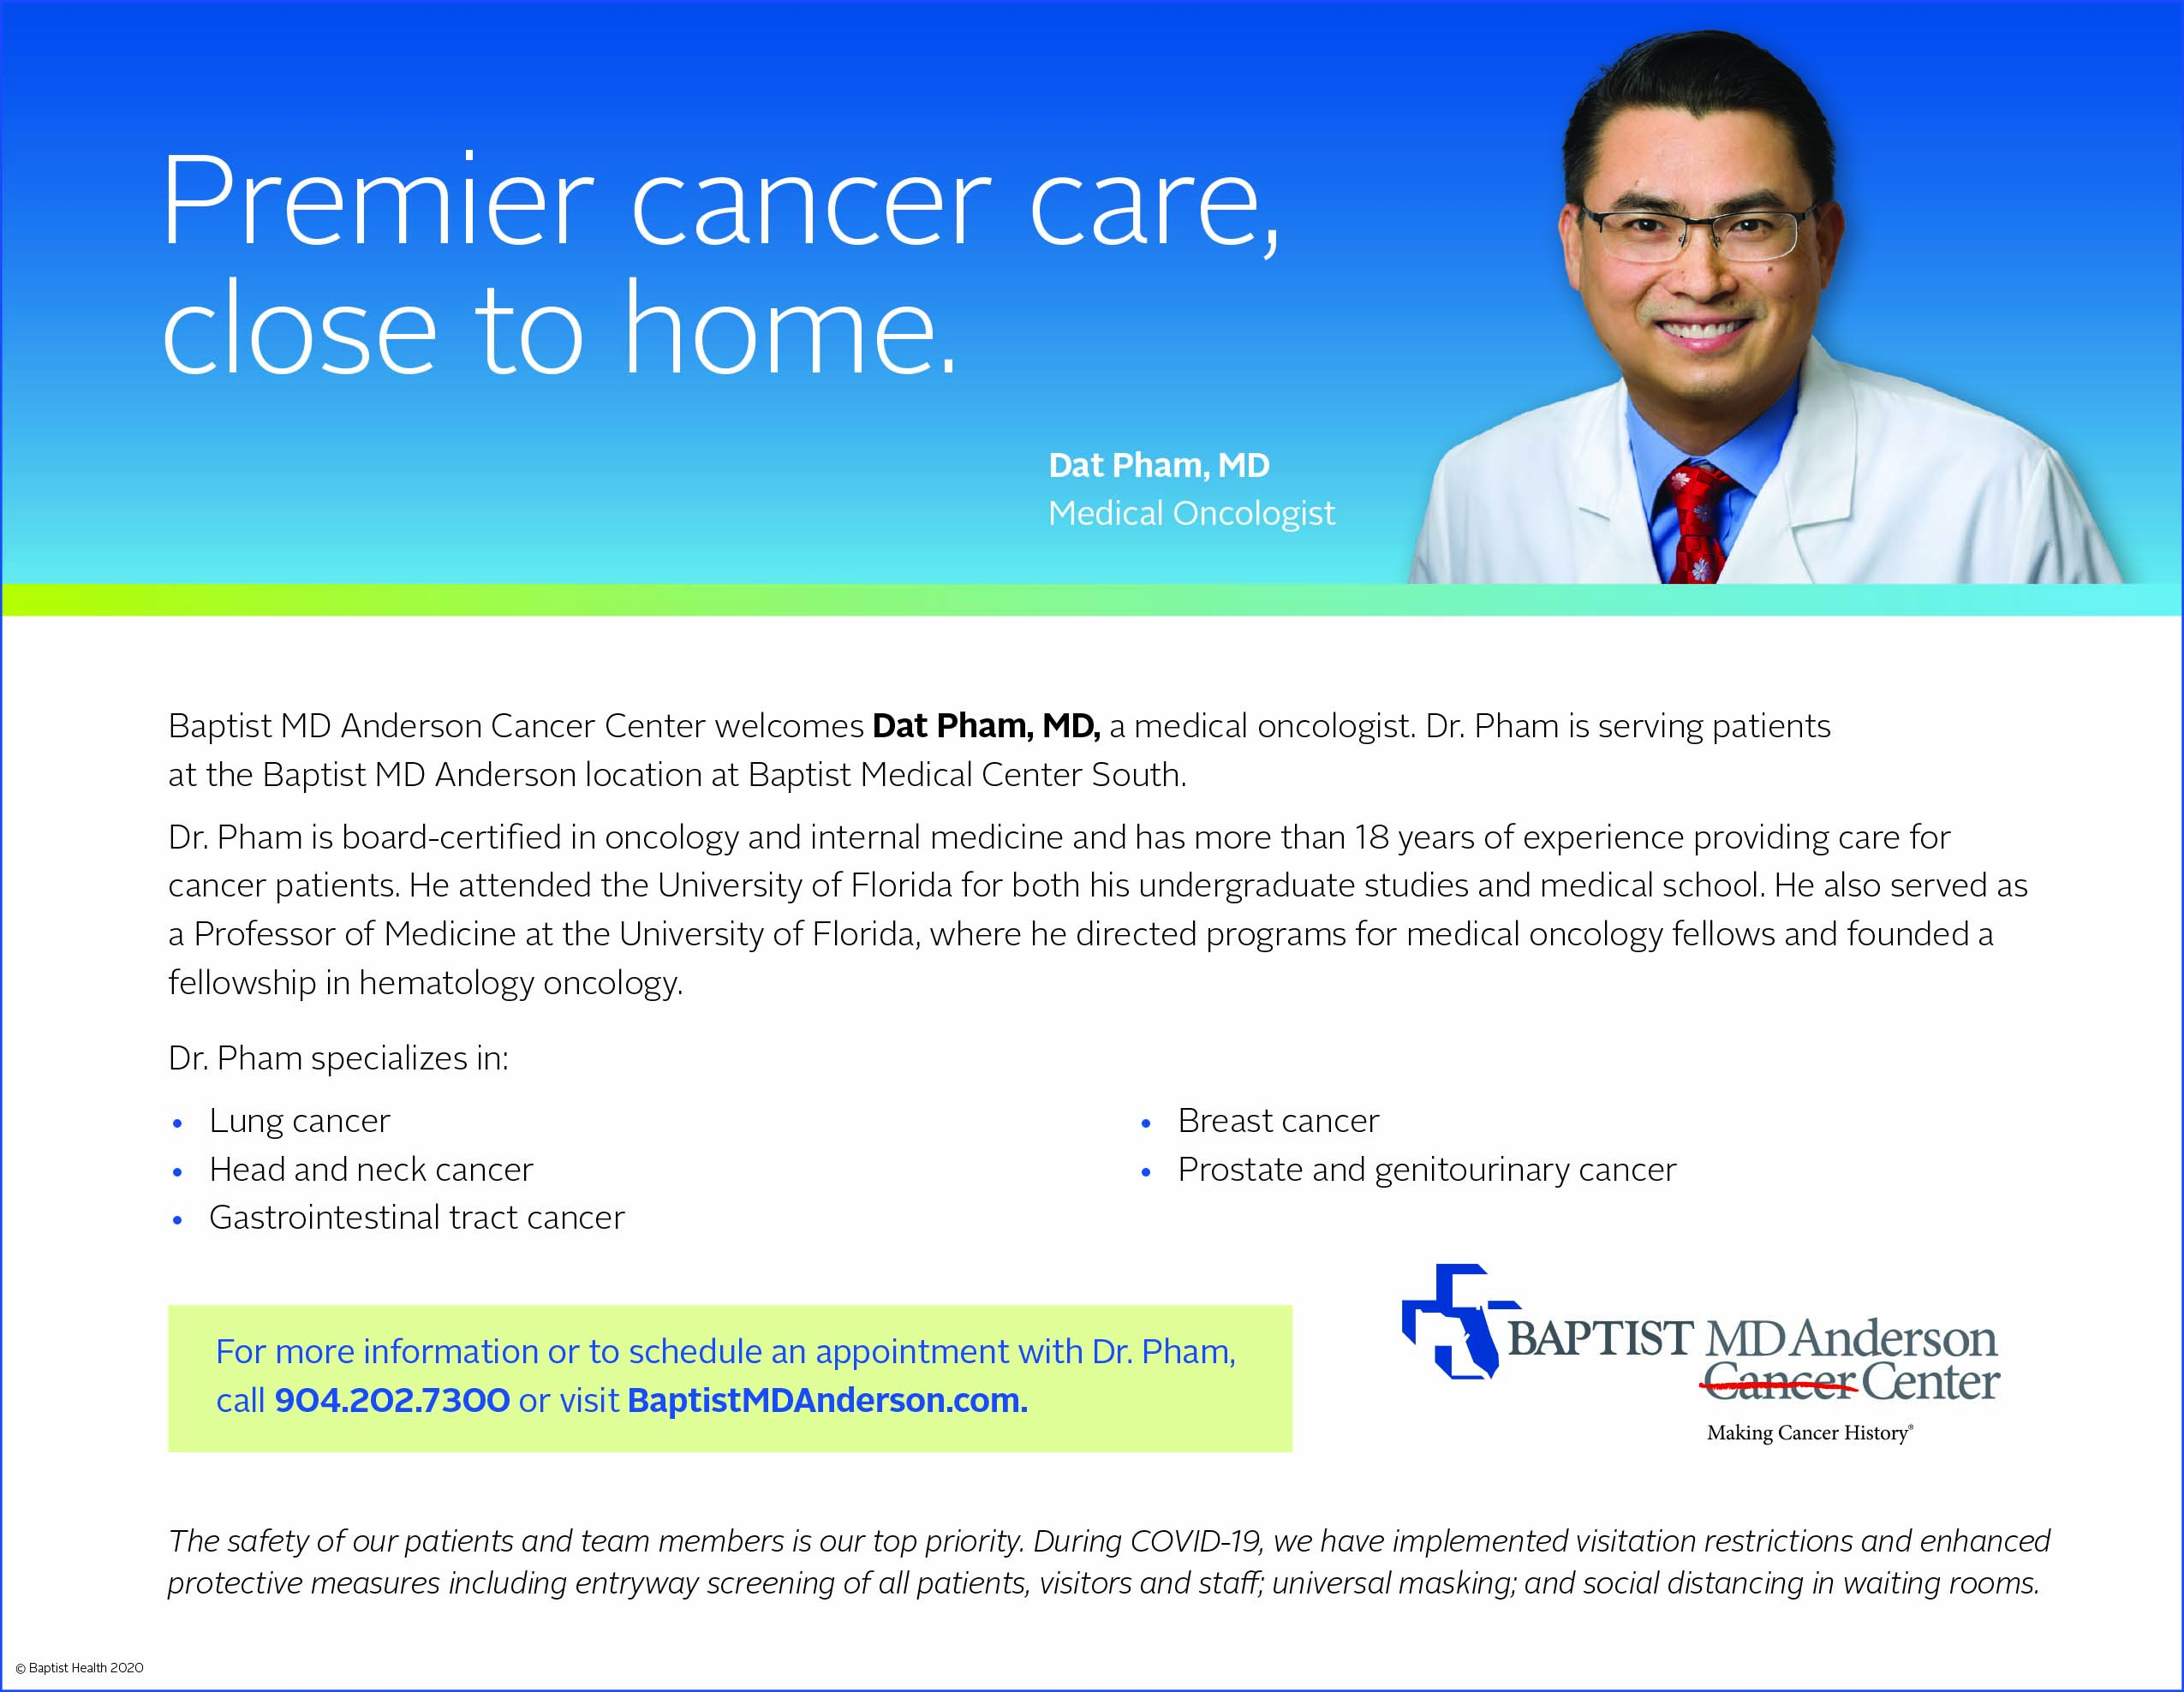 Premier cancer care close to home. Dat Pham, MD Medical Oncologist